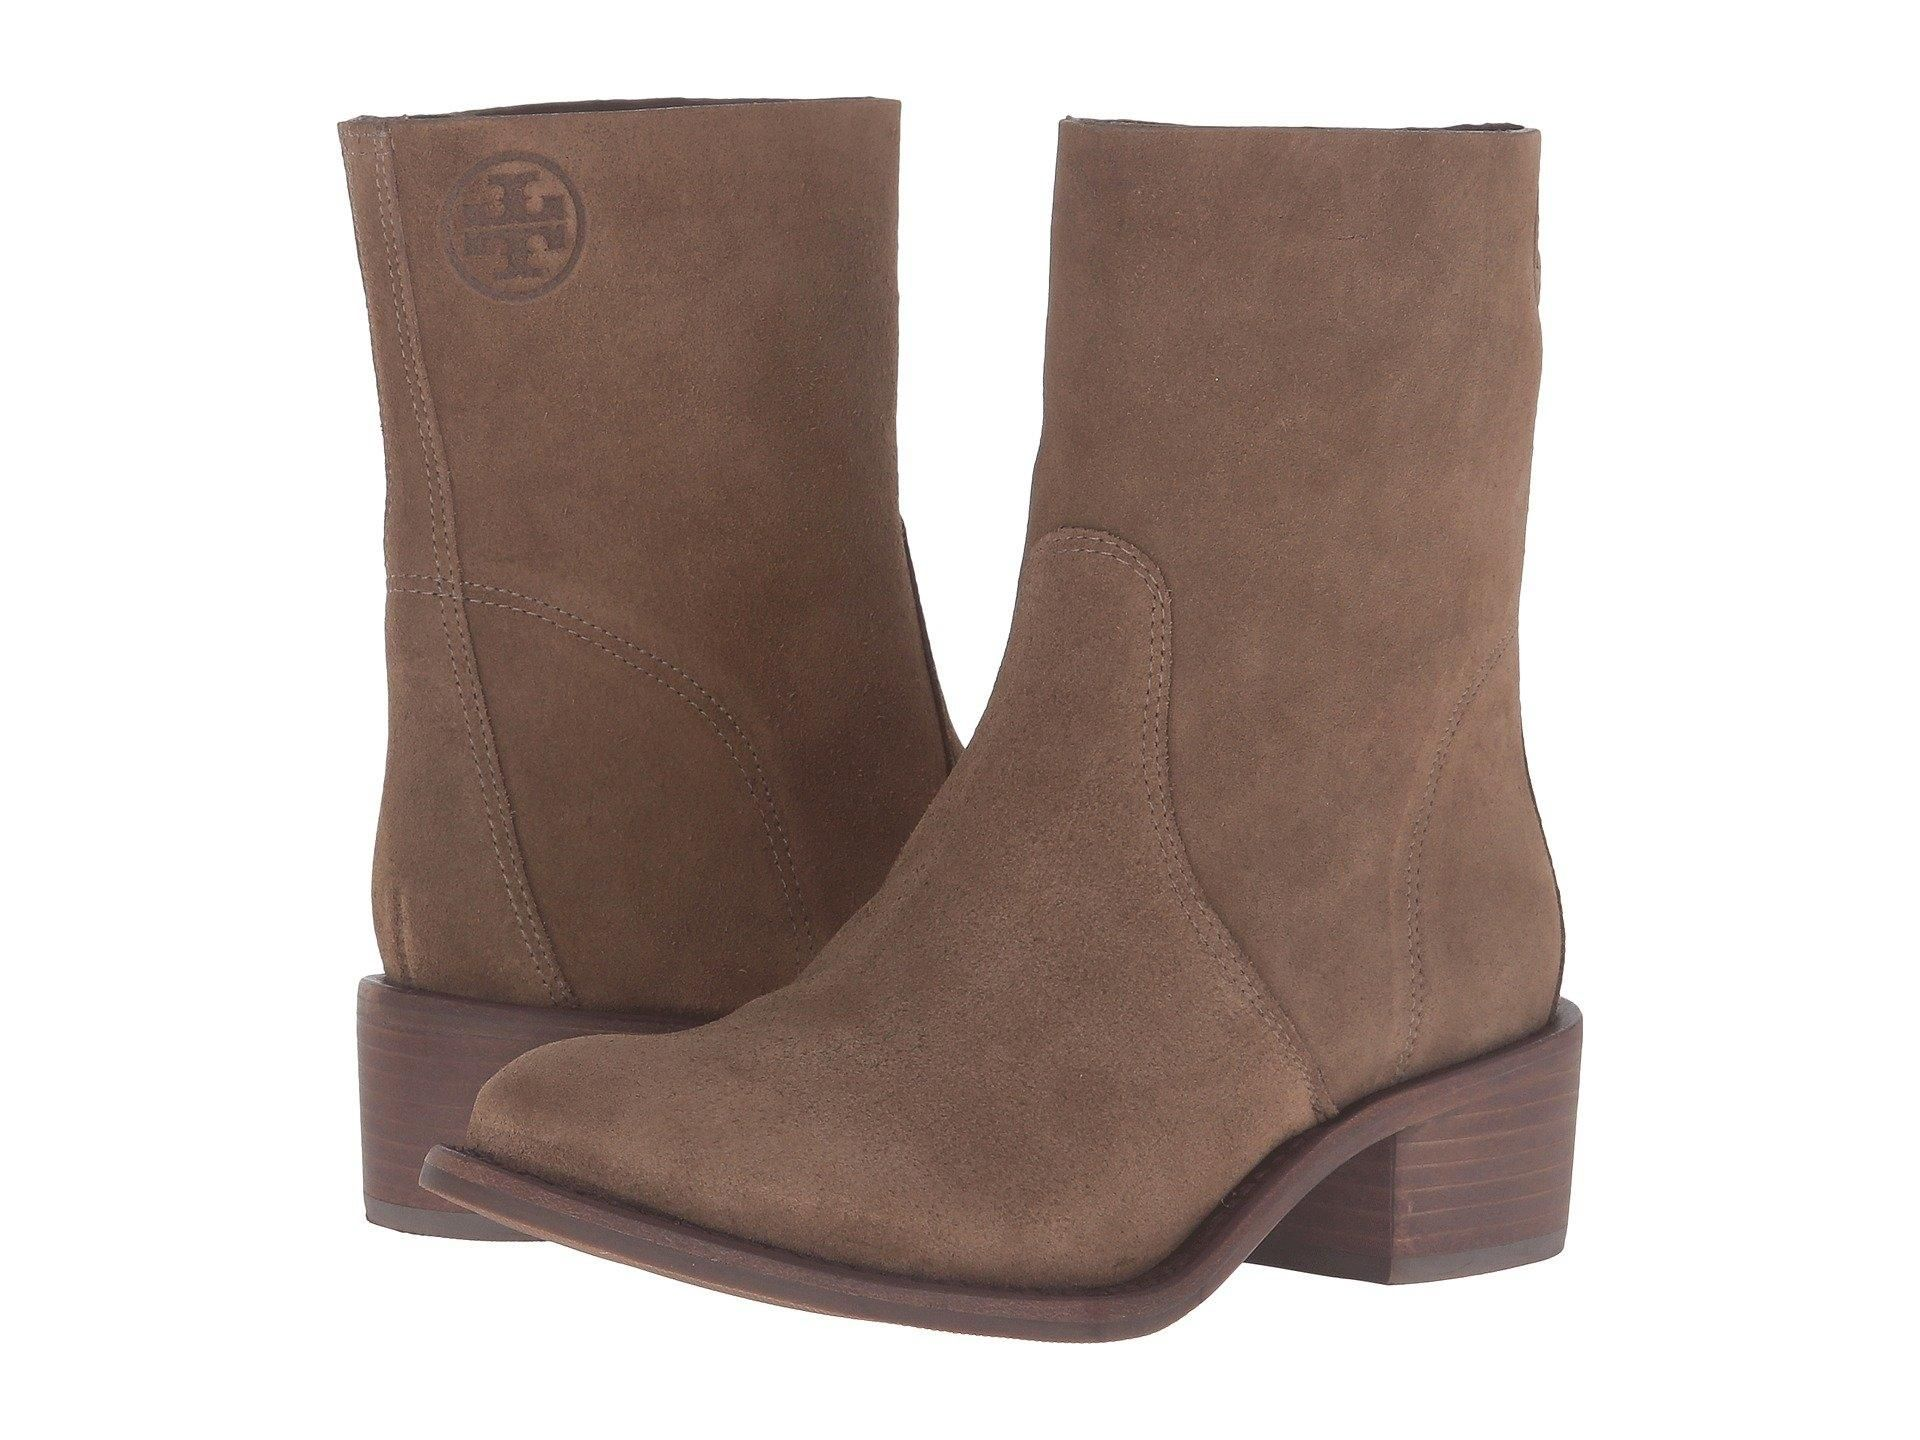 c8c33e7cfc71b2 Tory Burch Siena Women s Pull On Short 9.5 M River Rock - Brown Suede Boots.  Get the must-have boots of this season! These Tory Burch Siena Women s Pull  On ...